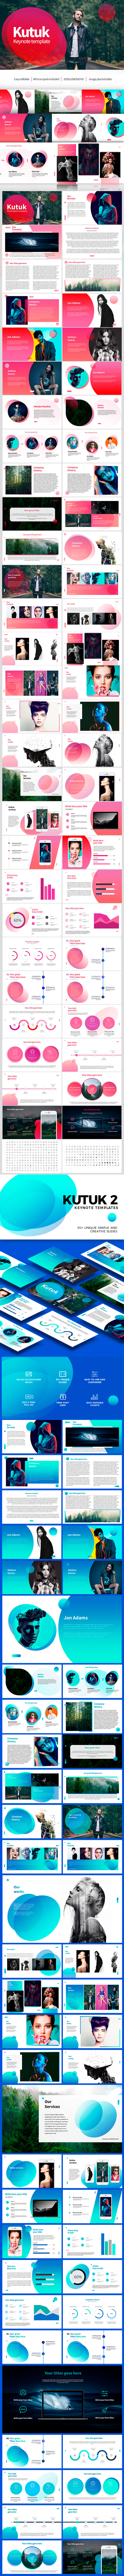 Kutuk Keynote Bundle 2 in 1 - Keynote Templates Presentation Templates